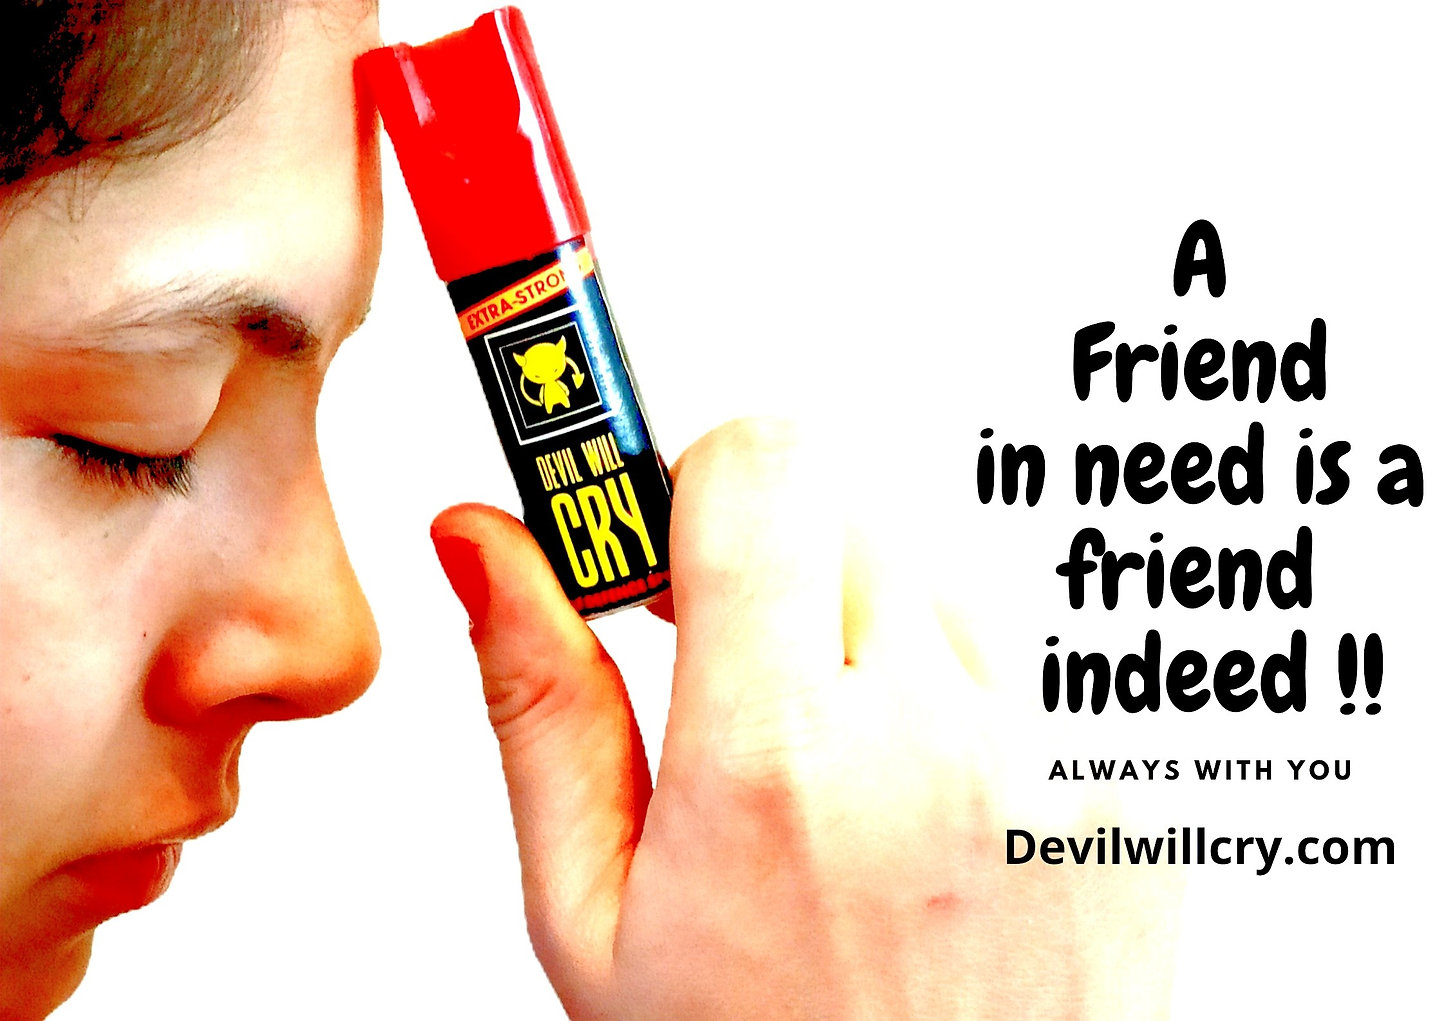 best pepper spray in India for self defence, women safety spray, self defense spray, bear spray, best pepper spray in India